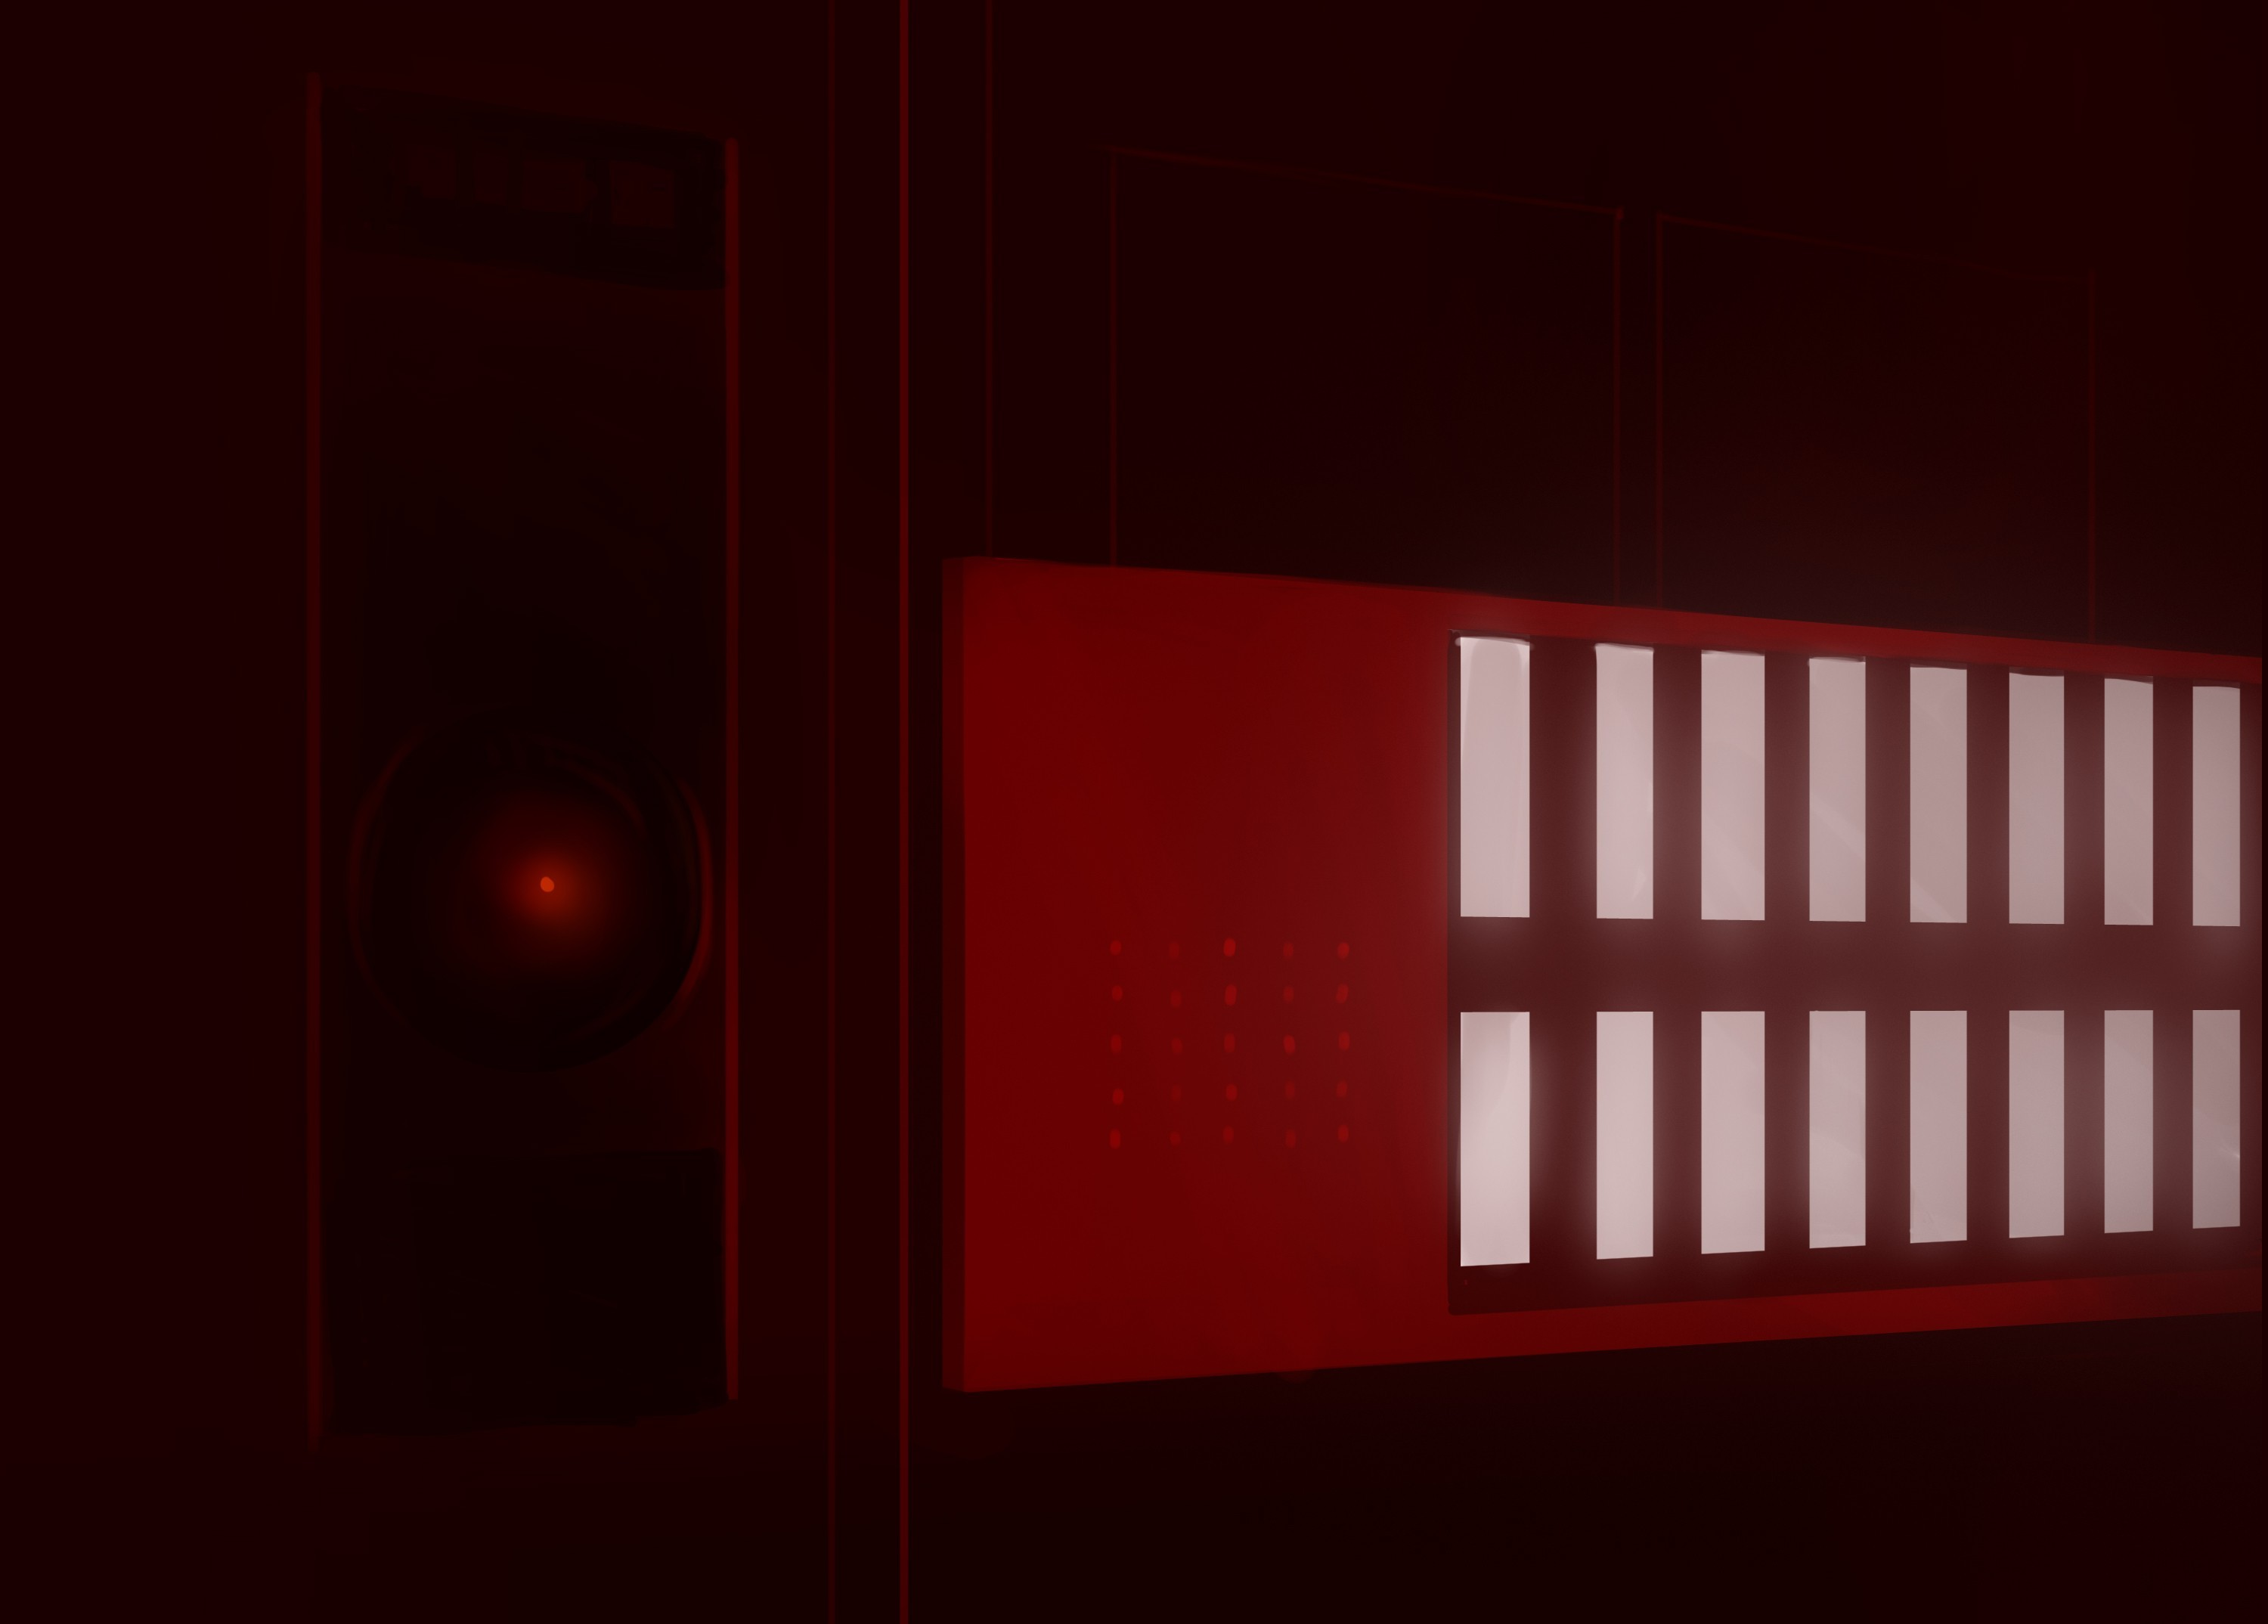 2001: A Space Odyssey, HAL 9000